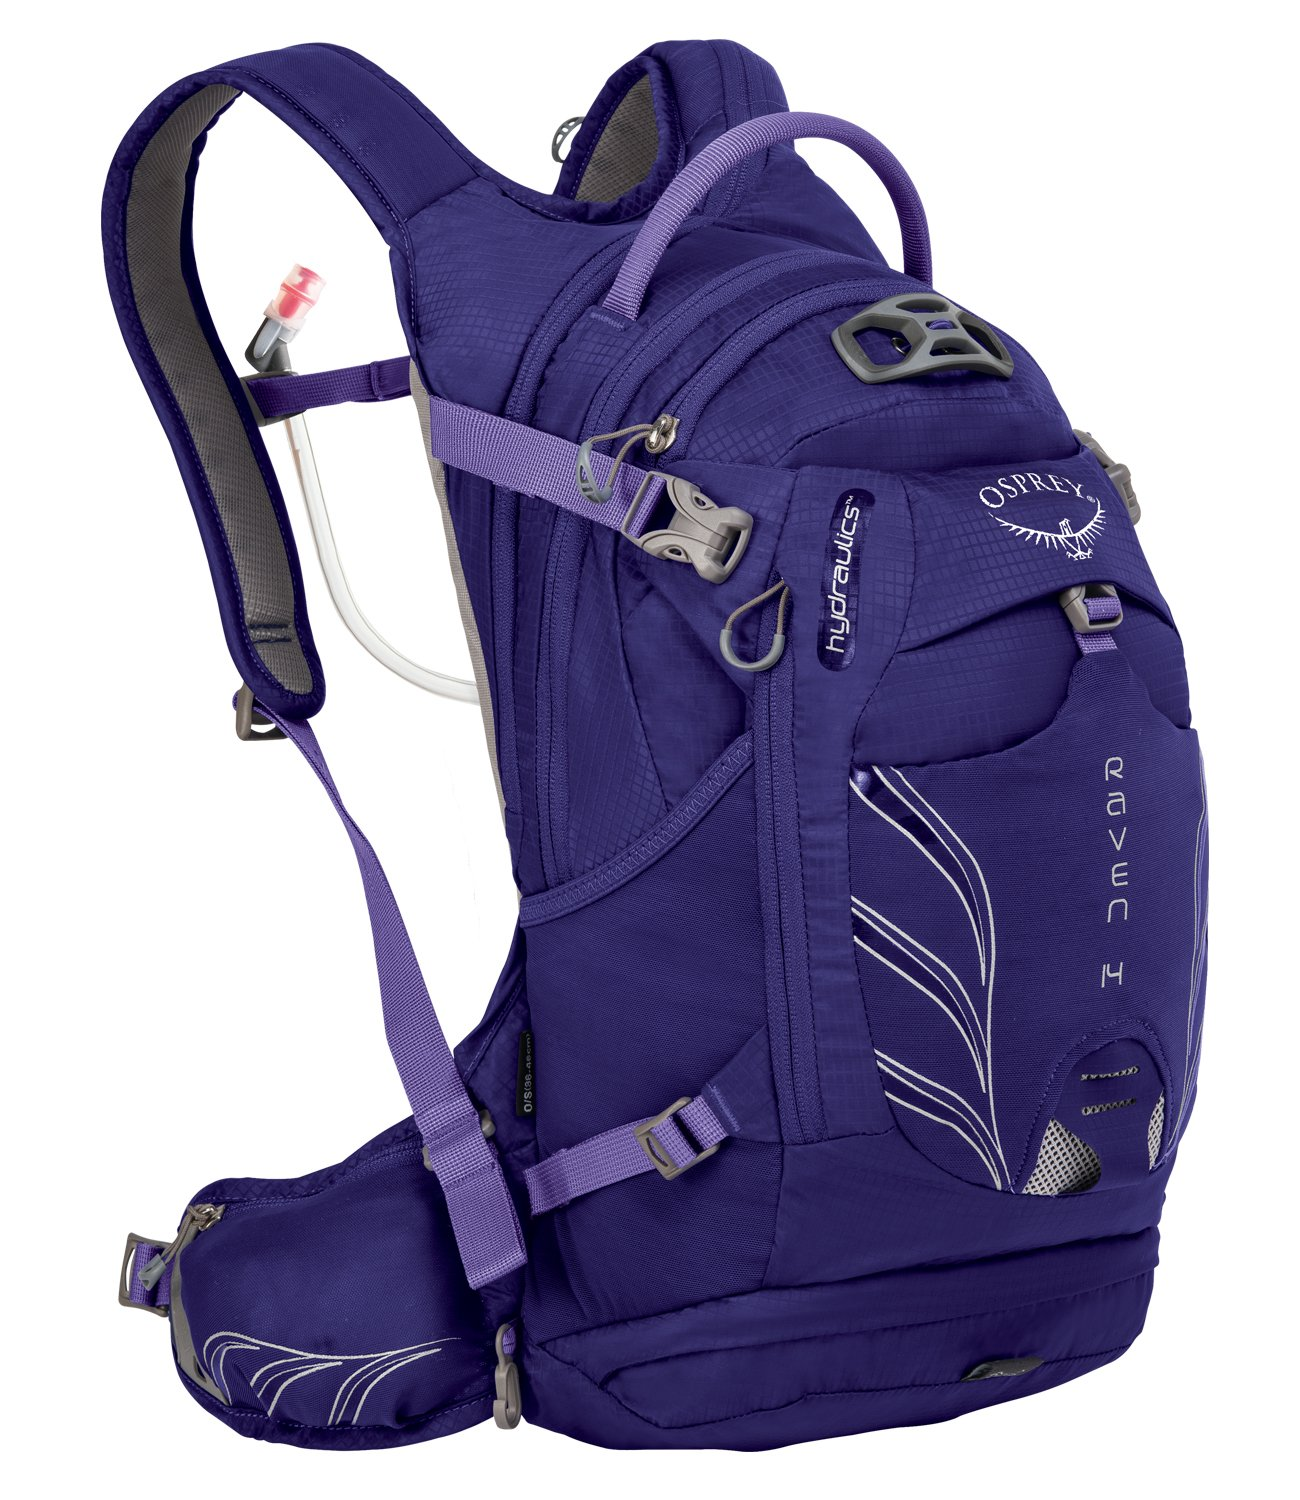 Osprey Packs Raven 14 Hydration Pack – Women 's – 854 Cuin One Size パープル(Royal Purple) B014EBJ1IC